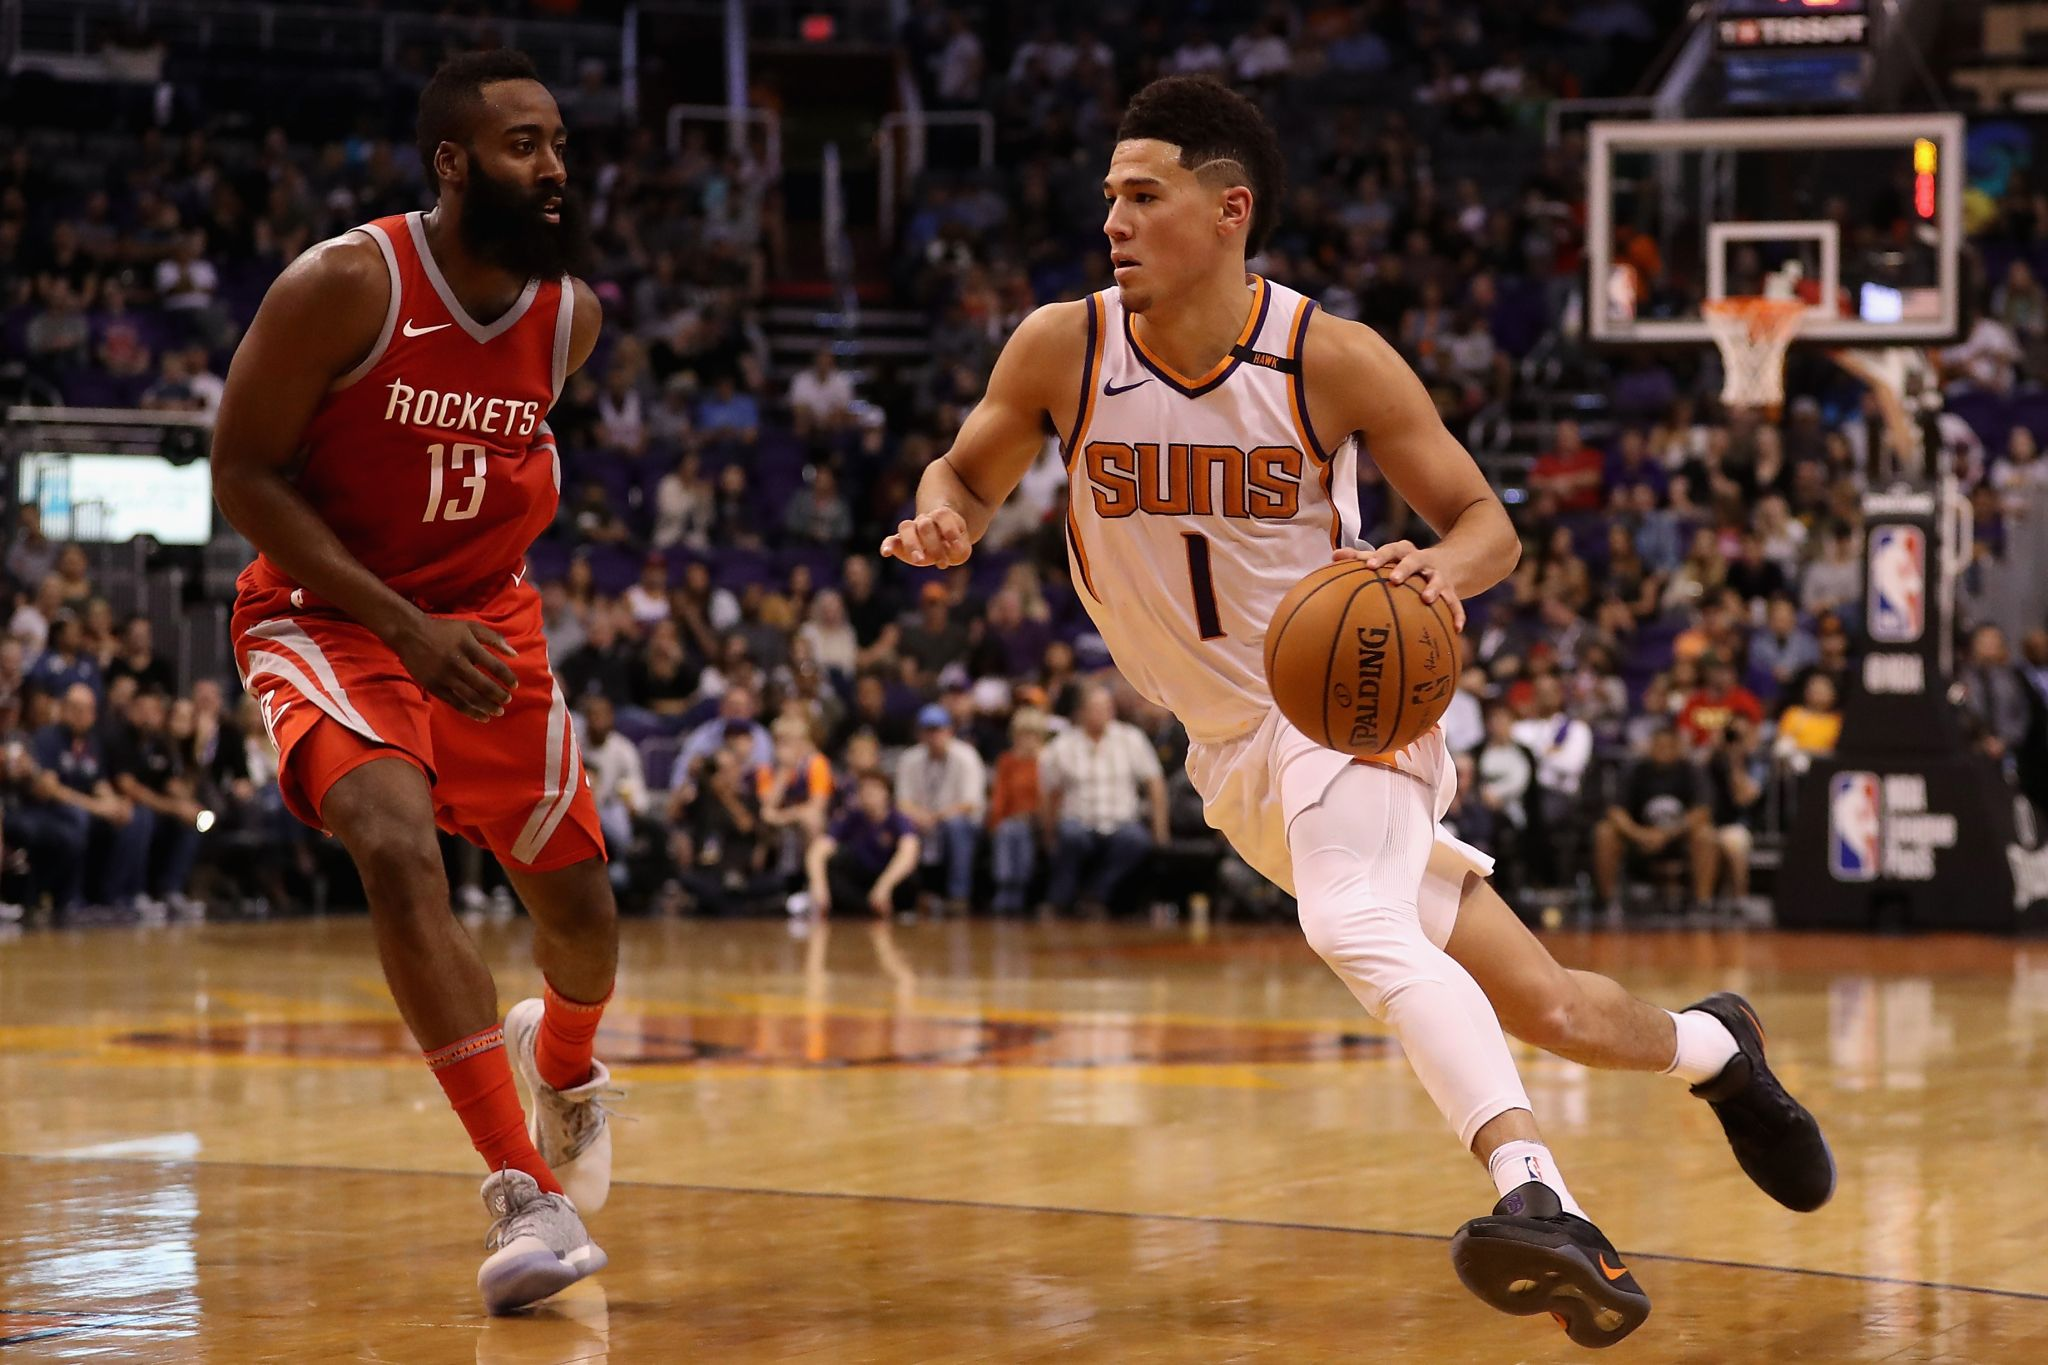 Suns' move of Devin Booker to point guard inspired by James Harden